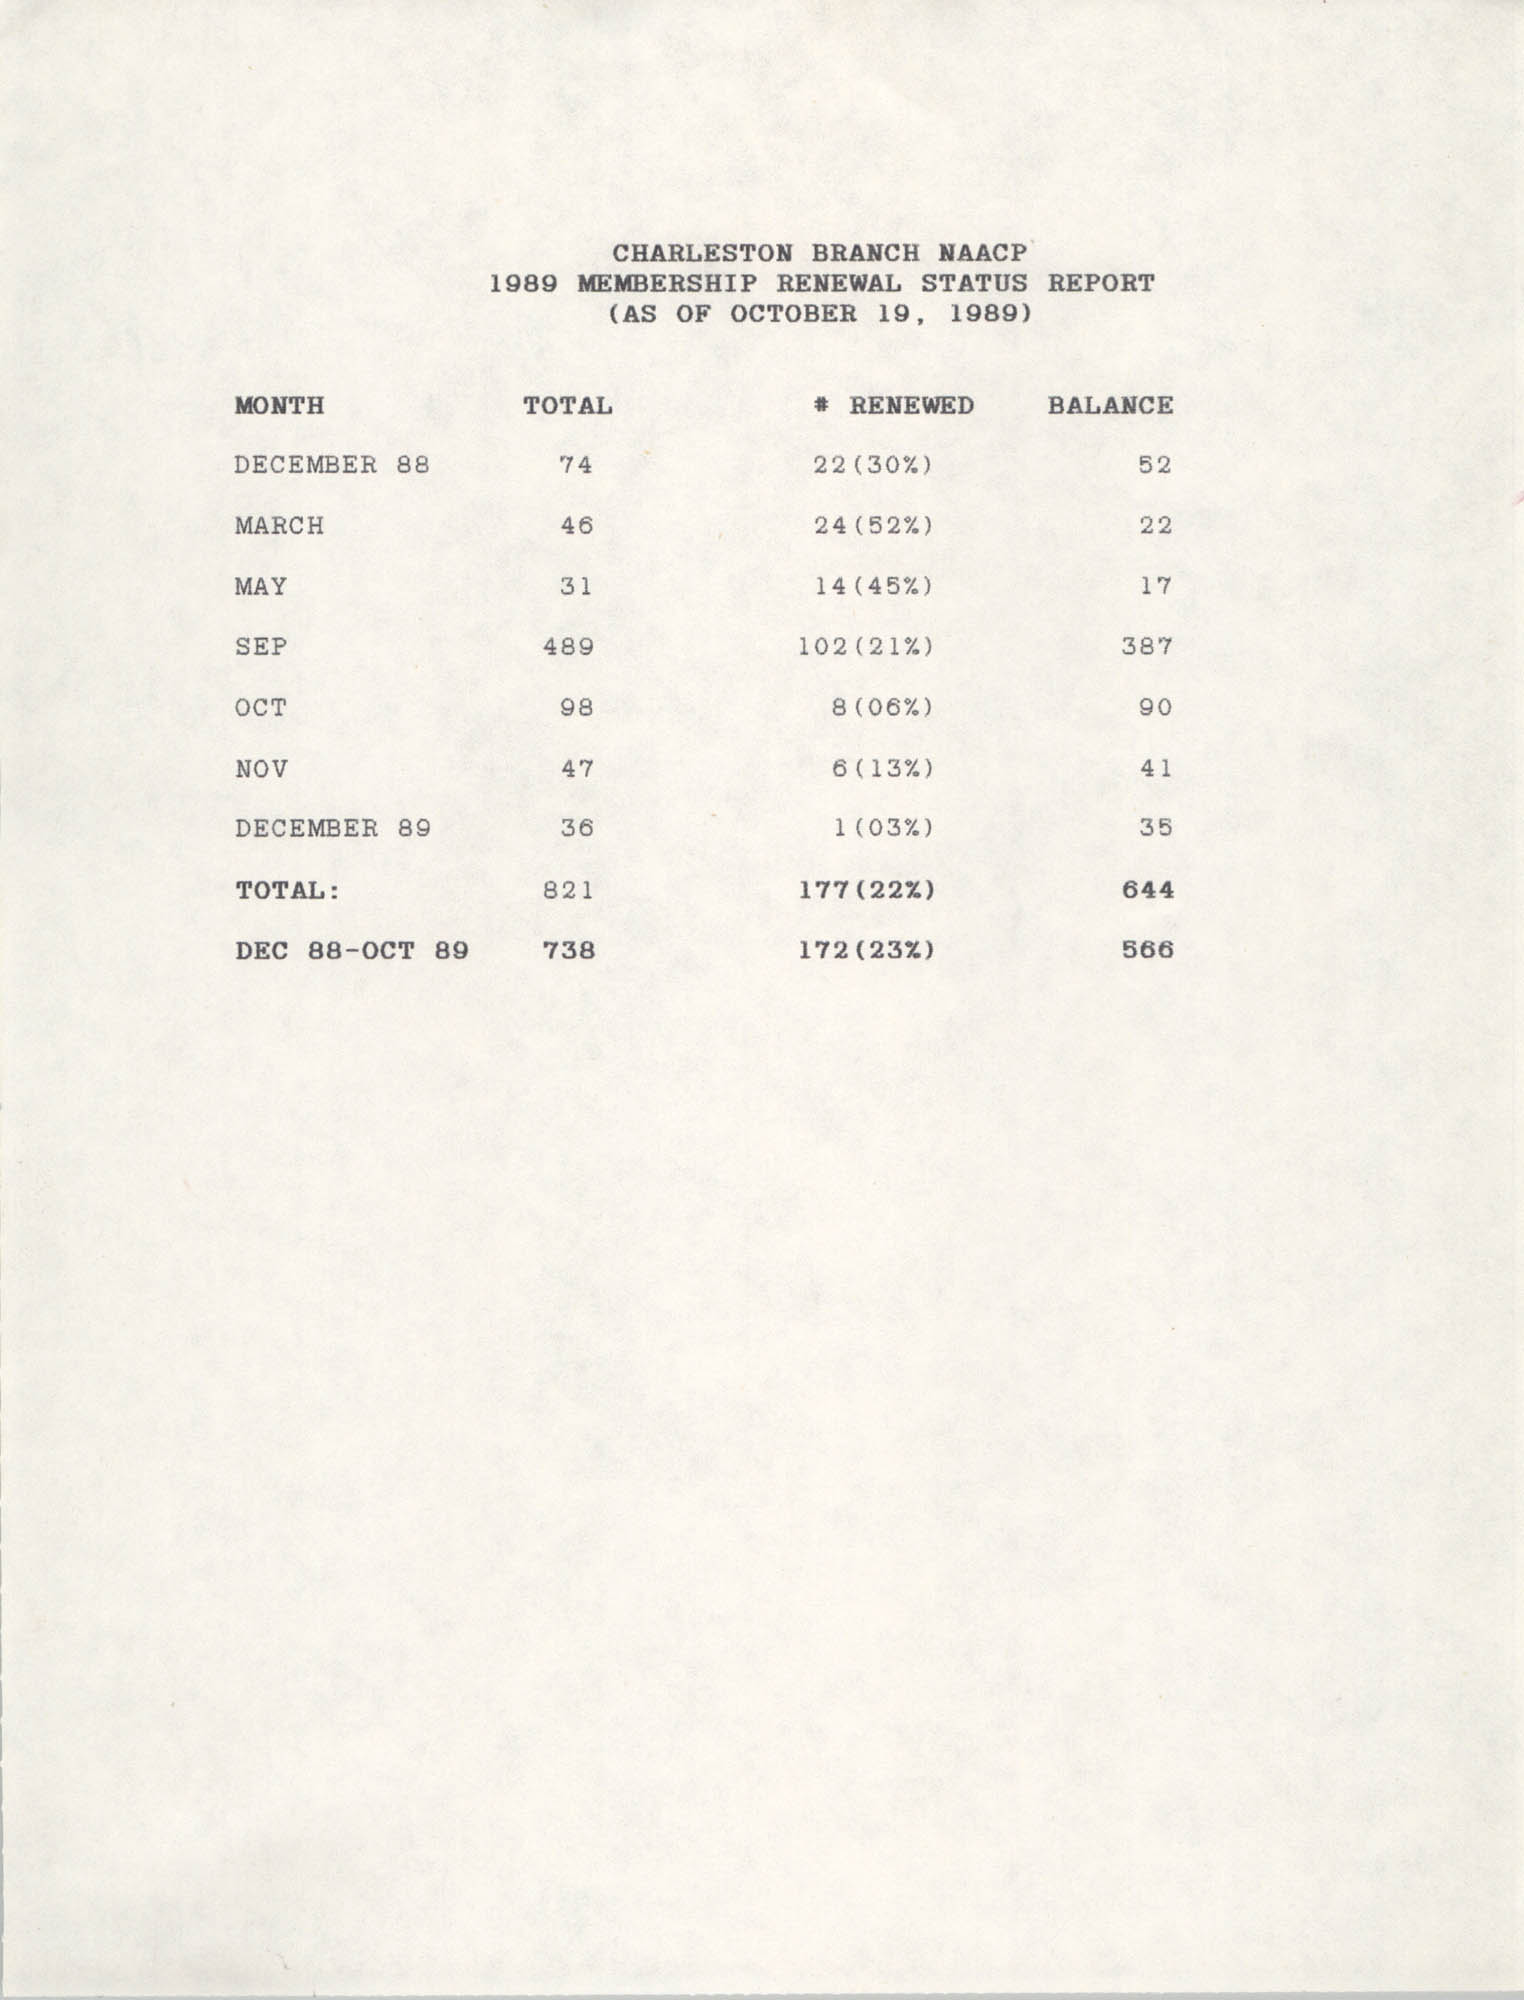 Membership Renewal Status Report, National Association for the Advancement of Colored People, October 19, 1989